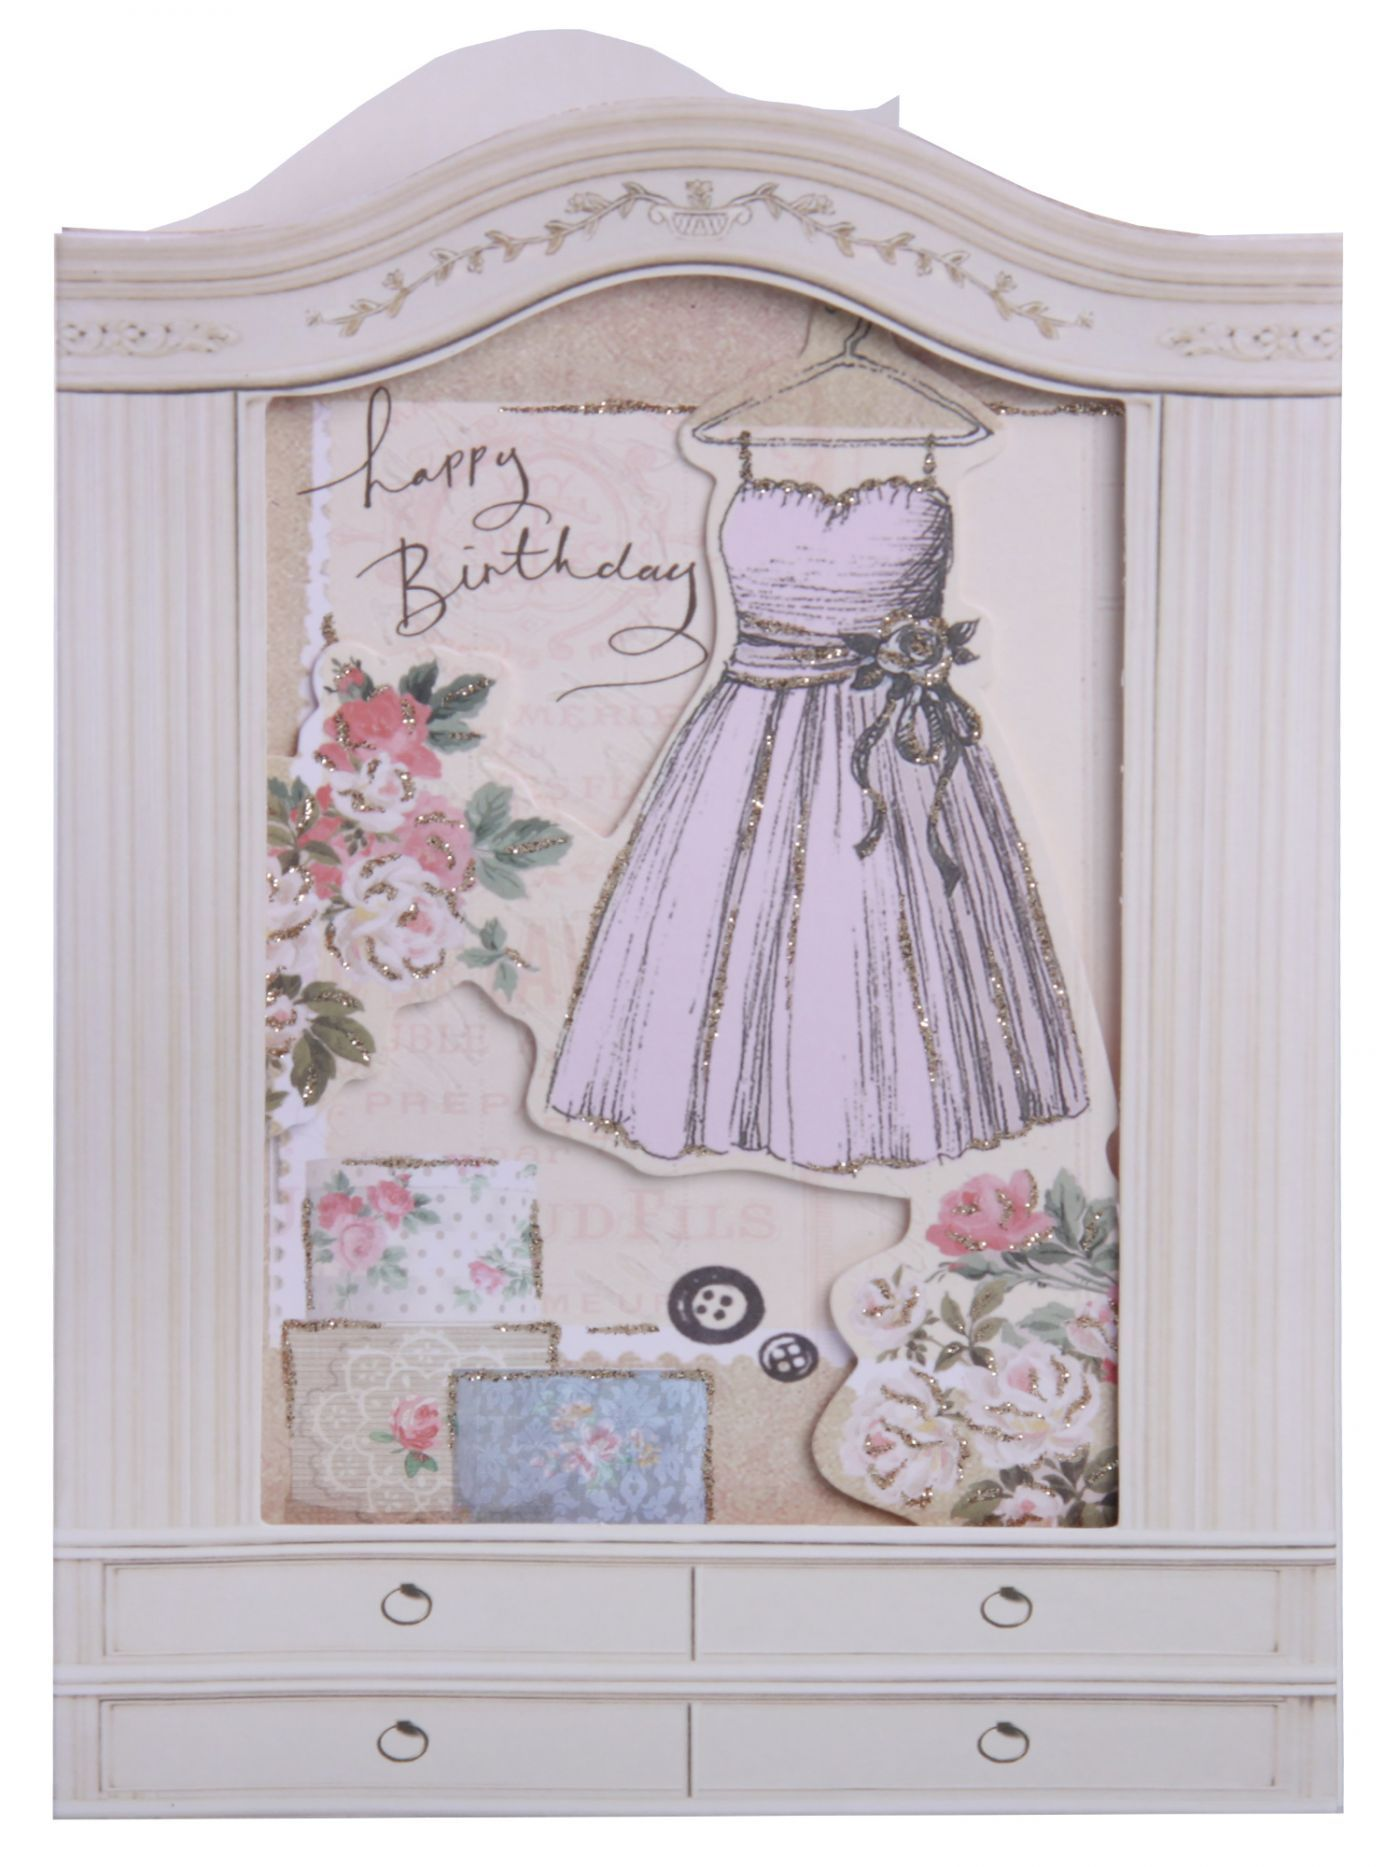 Clintons Collection Window Dress Birthday Card Birthday Cards – Birthday Cards Clintons